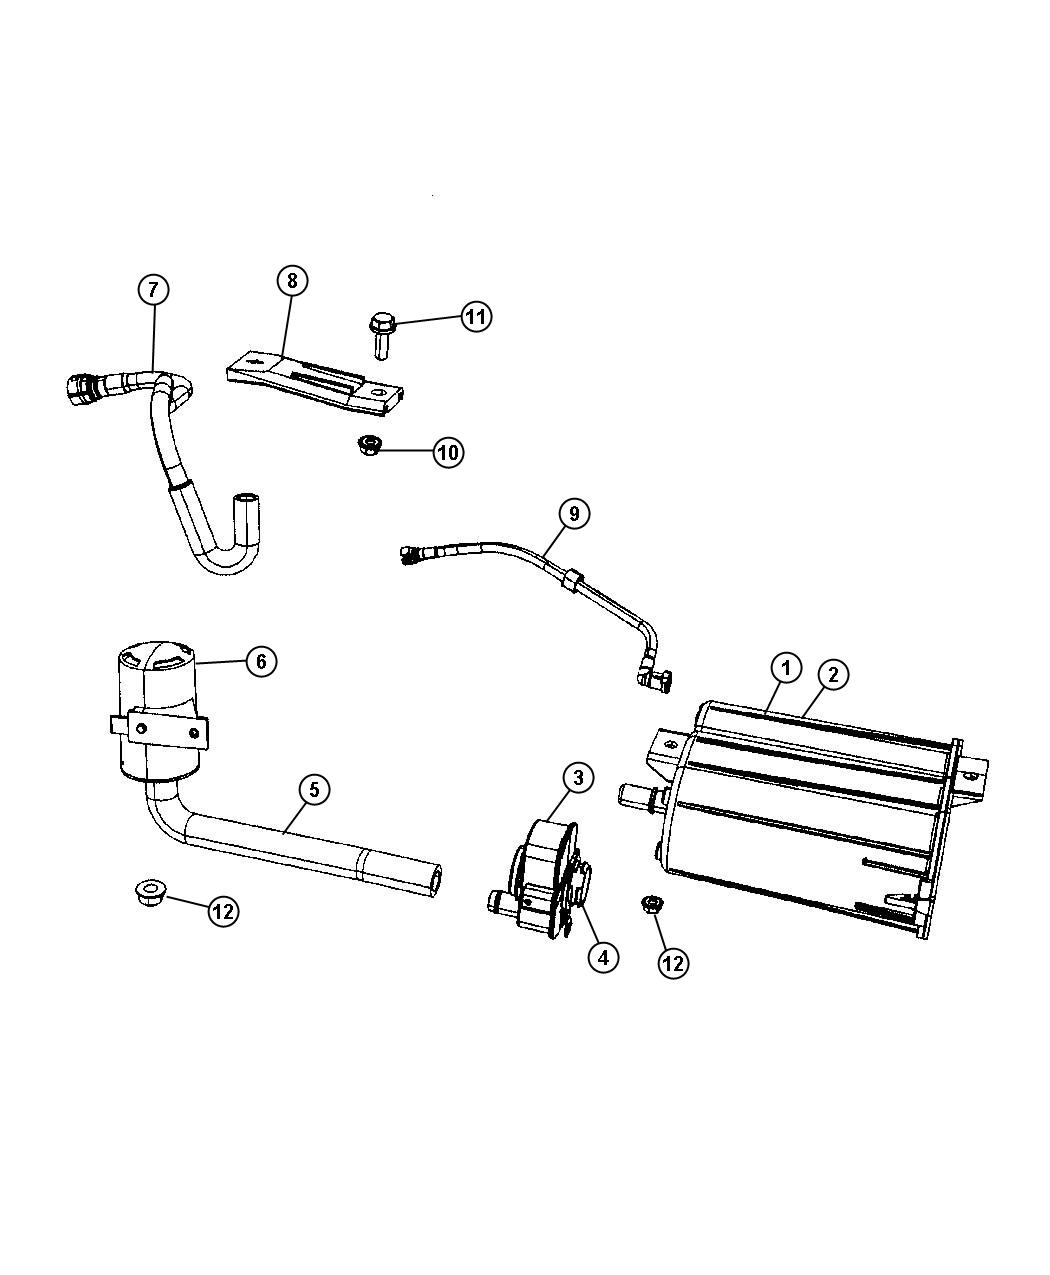 99 Ford Explorer Brake Diagram further Chrysler Town And Country Wiring Diagram Brake Lights as well Chrysler 300 Blend Door Actuator Location additionally 2004 Chrysler 300m Transmission Control Module Location furthermore Fuse Box Wiring Diagram 1999 Chrysler 300m. on 1999 chrysler 300m fuse box diagram